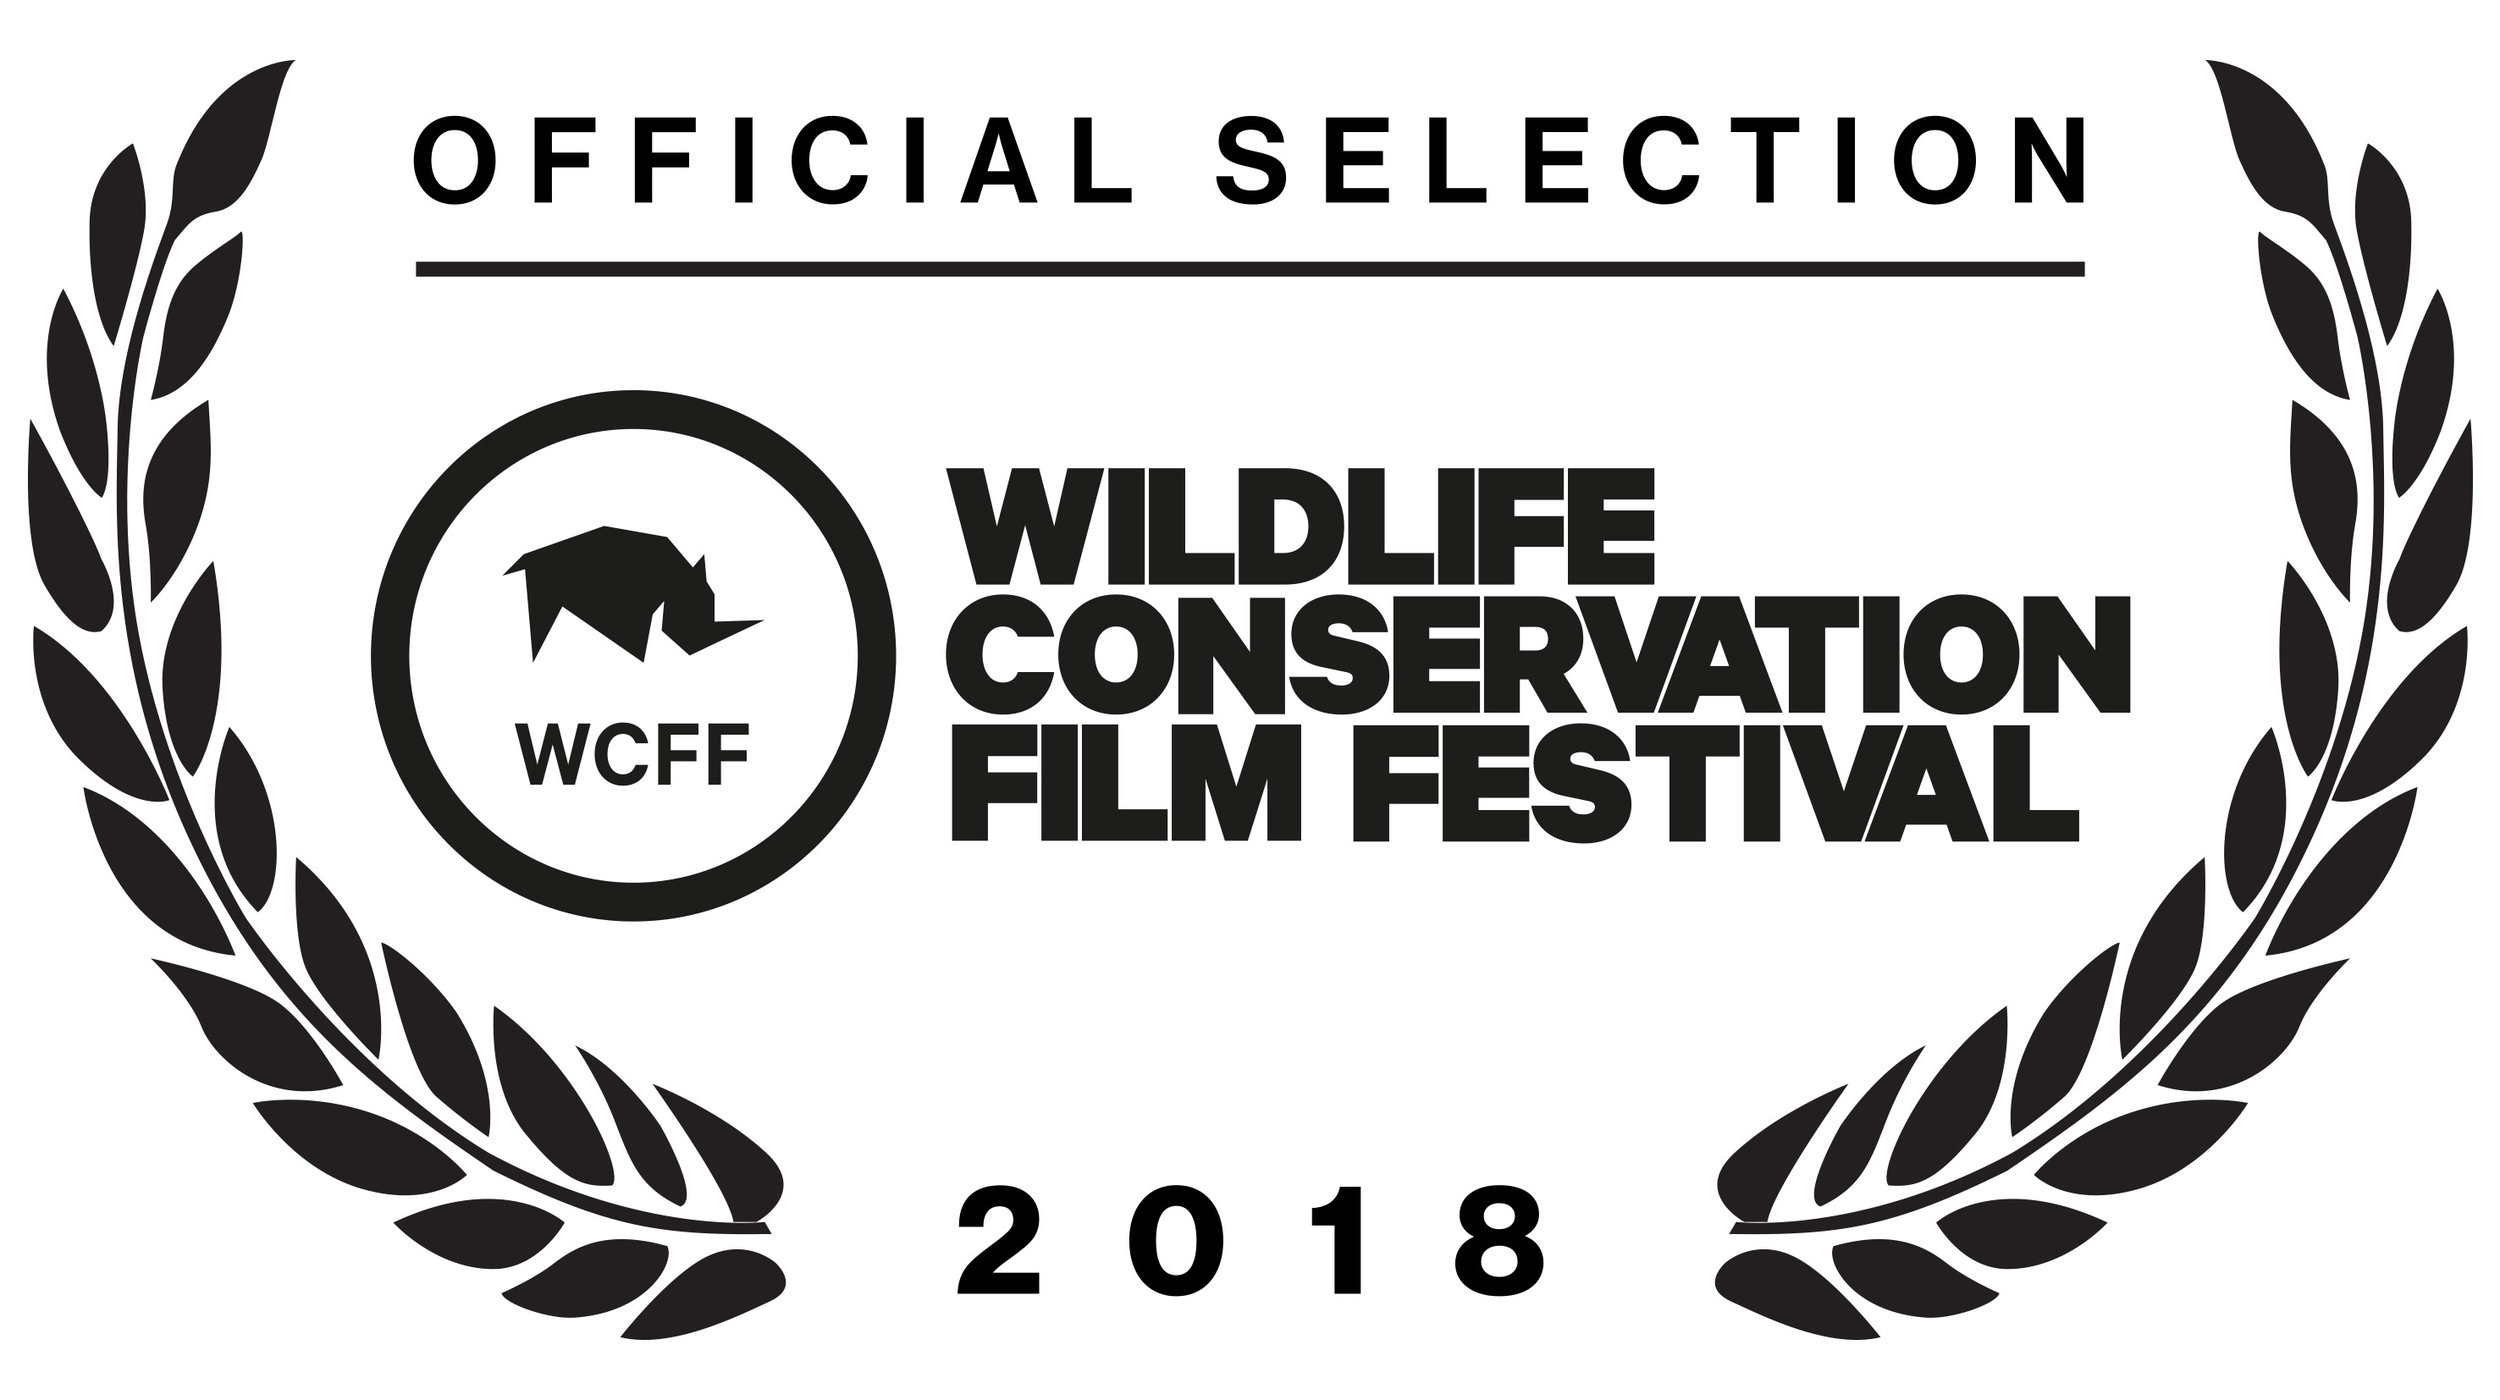 14th February, 2018  OFF TO THE BIG APPLE!   Exciting times: It doesn't get too much bigger than this in the wildlife/conservation film festival world. 'A Gentle Giant' has been officially selected at 2018 Wildlife Conservation Film Festival. The film will have its North American big screen premiere at Cinema Village Theater, 22 East 12th Street & University Place New York during the fest Oct 19-25.